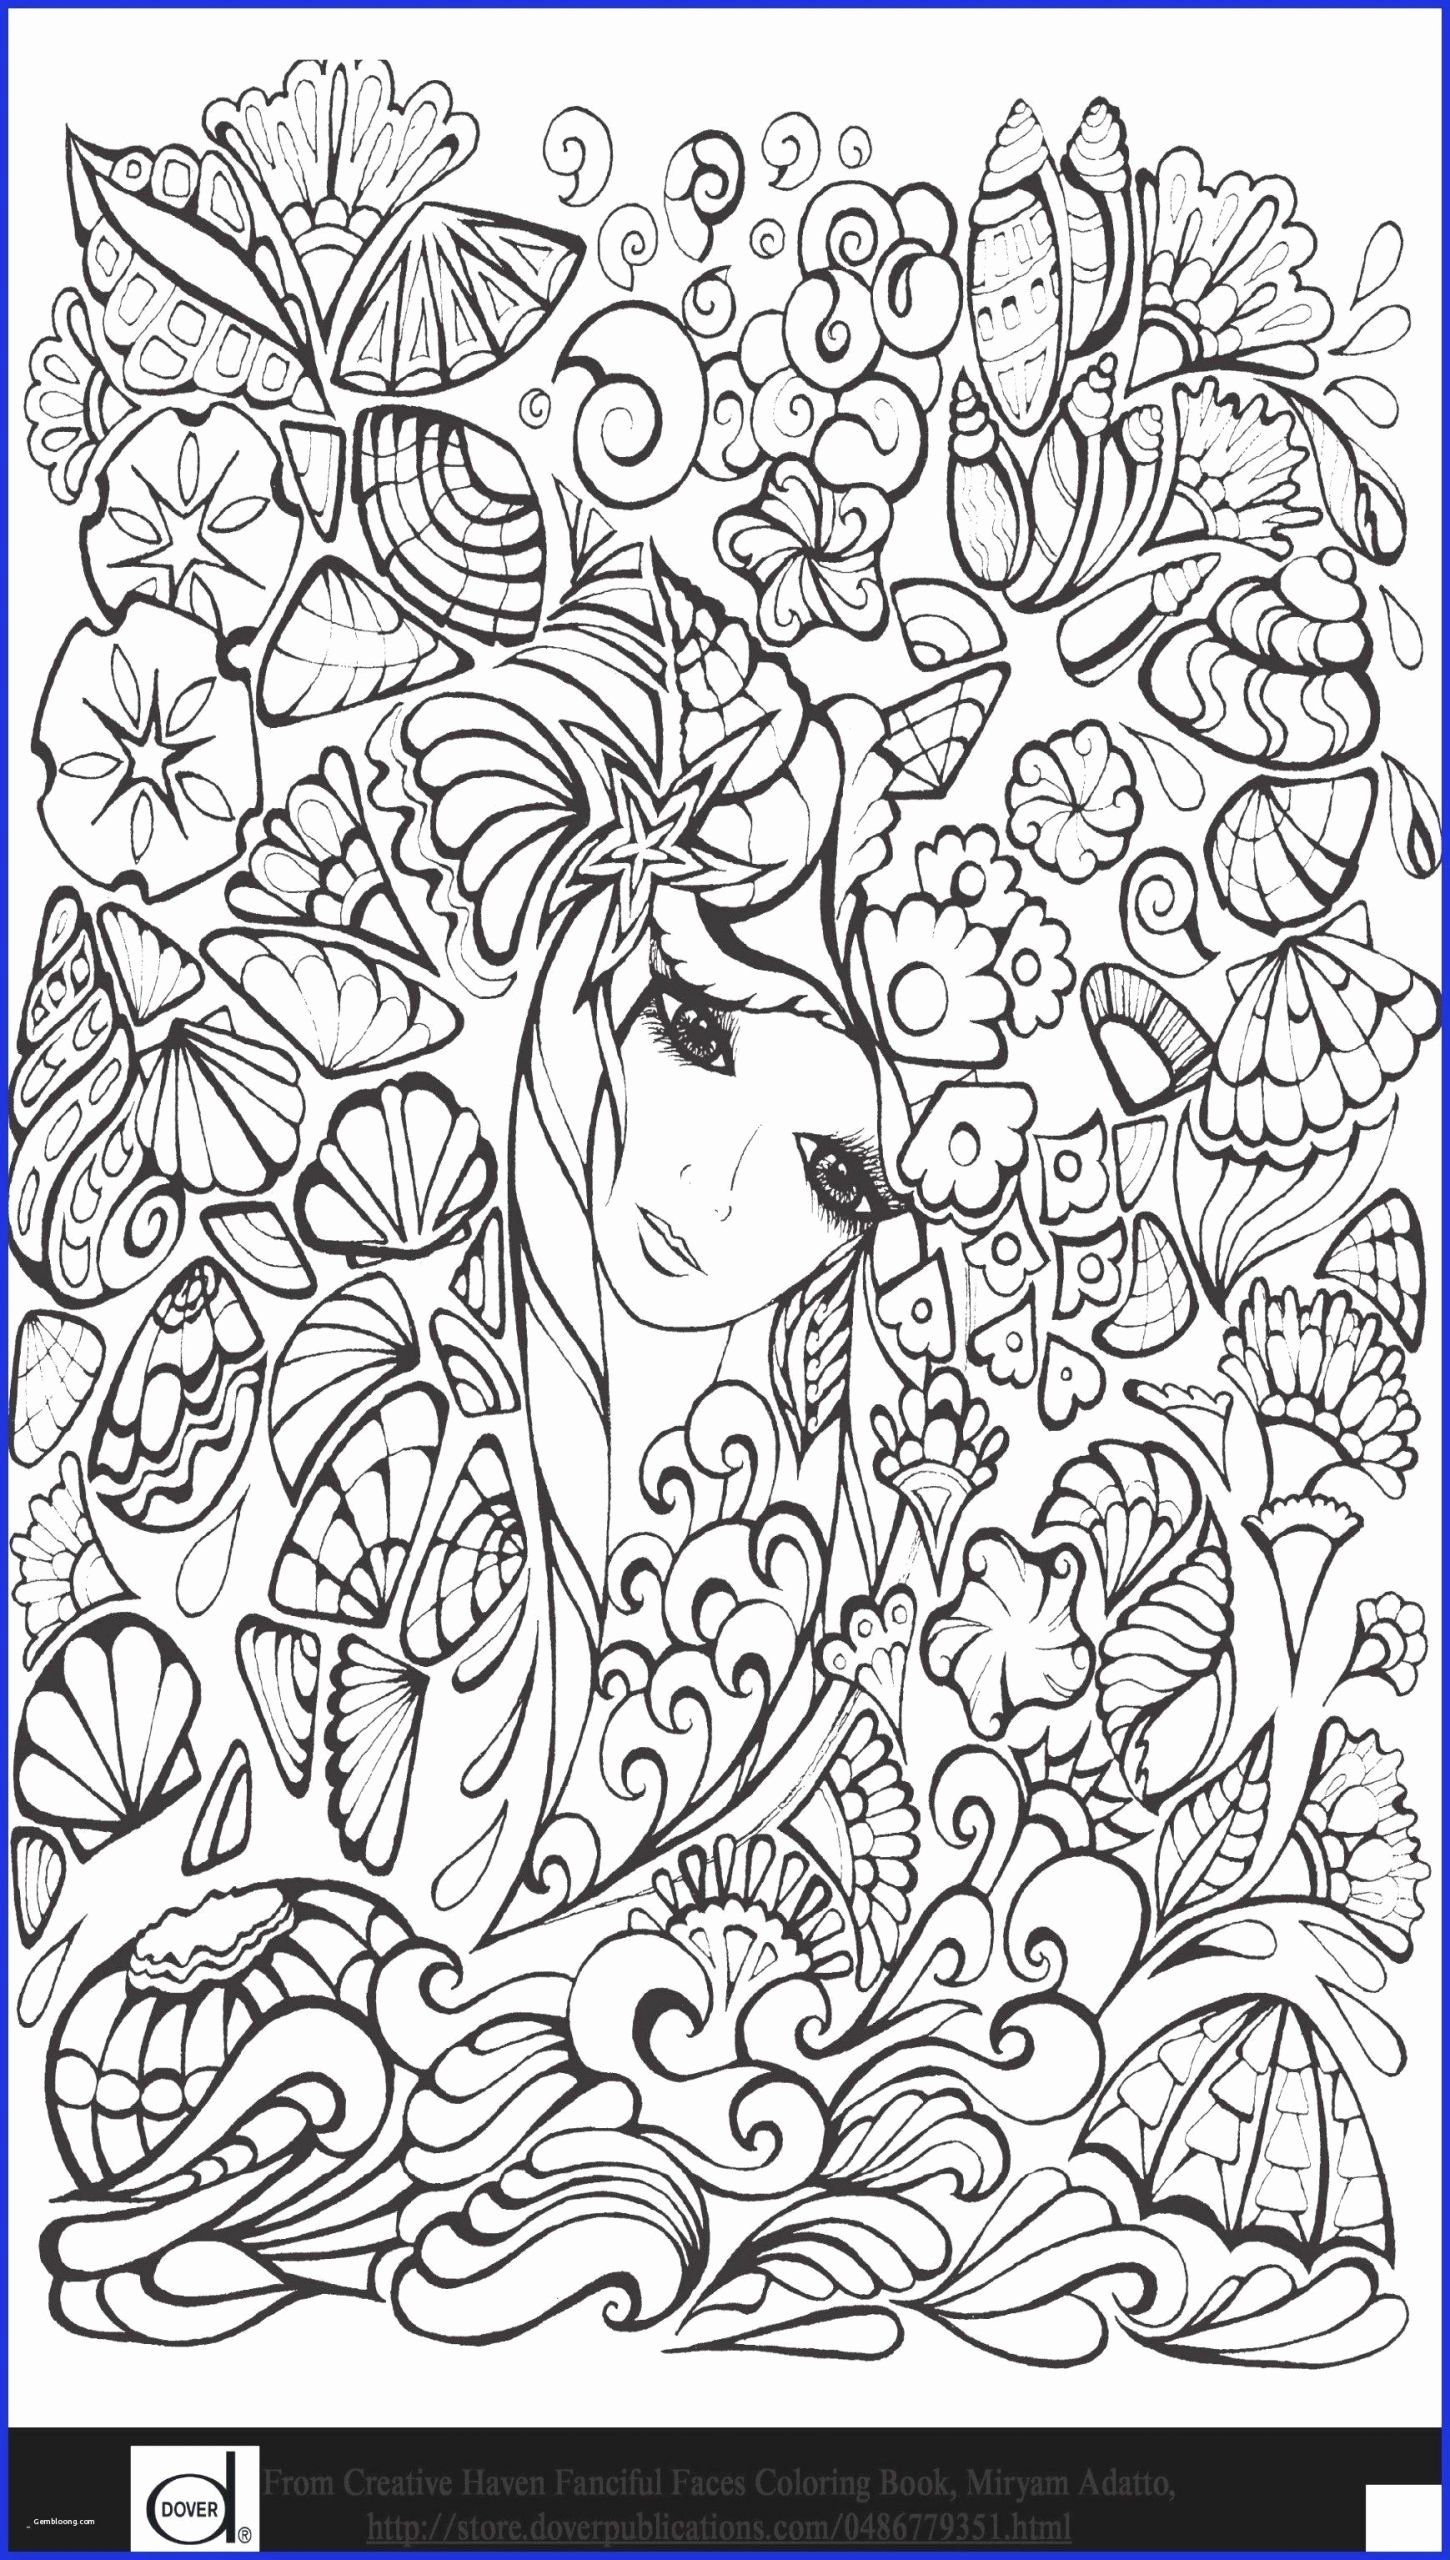 Coloring For Adults Online Unique Coloring Pages Disney Coloring Pages For Adu Disney Princess Coloring Pages Tinkerbell Coloring Pages Princess Coloring Pages